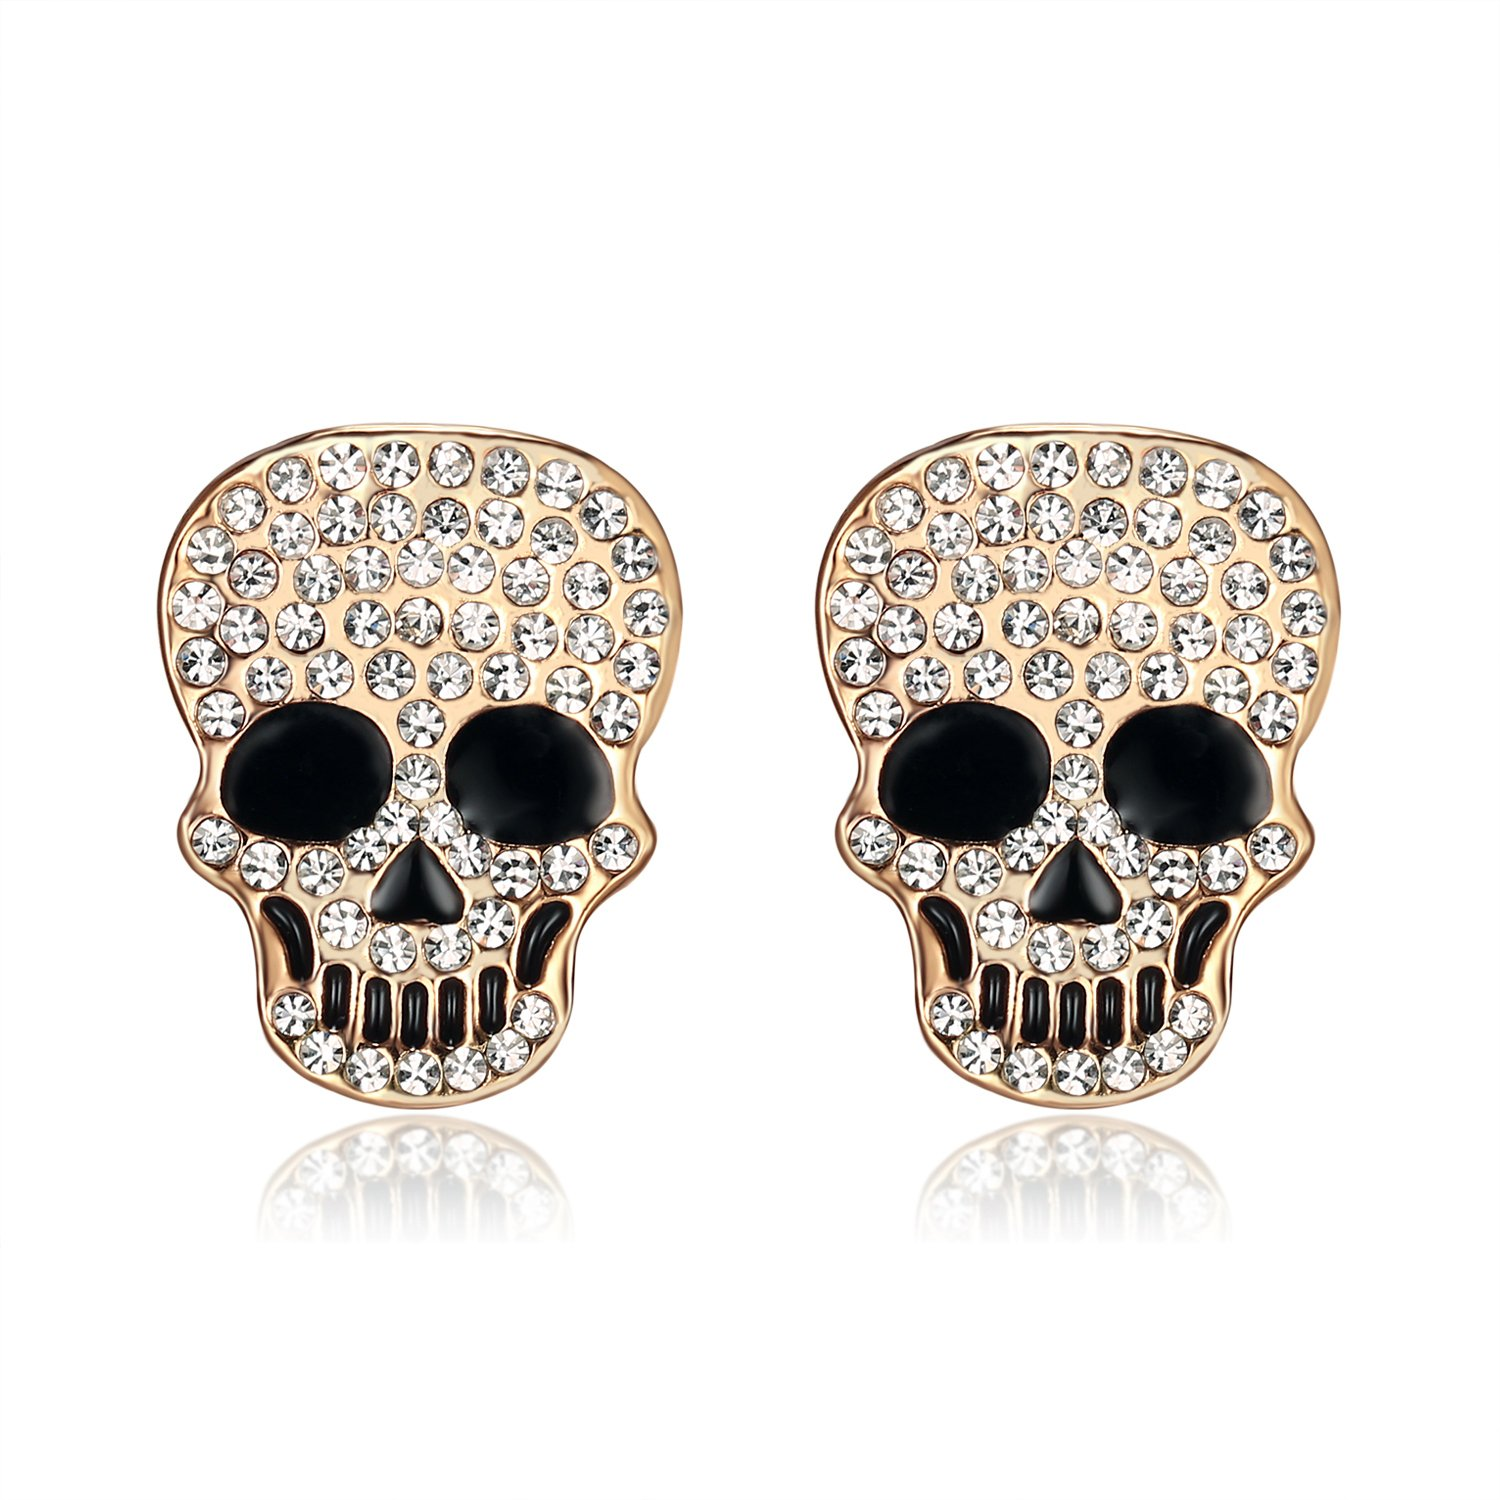 Lee Island Fashion Jewelry 18K Gold Plated White Crystal Skull Stud Earrings Jackets-Halloween Costumes for Women Girls MSRP $110